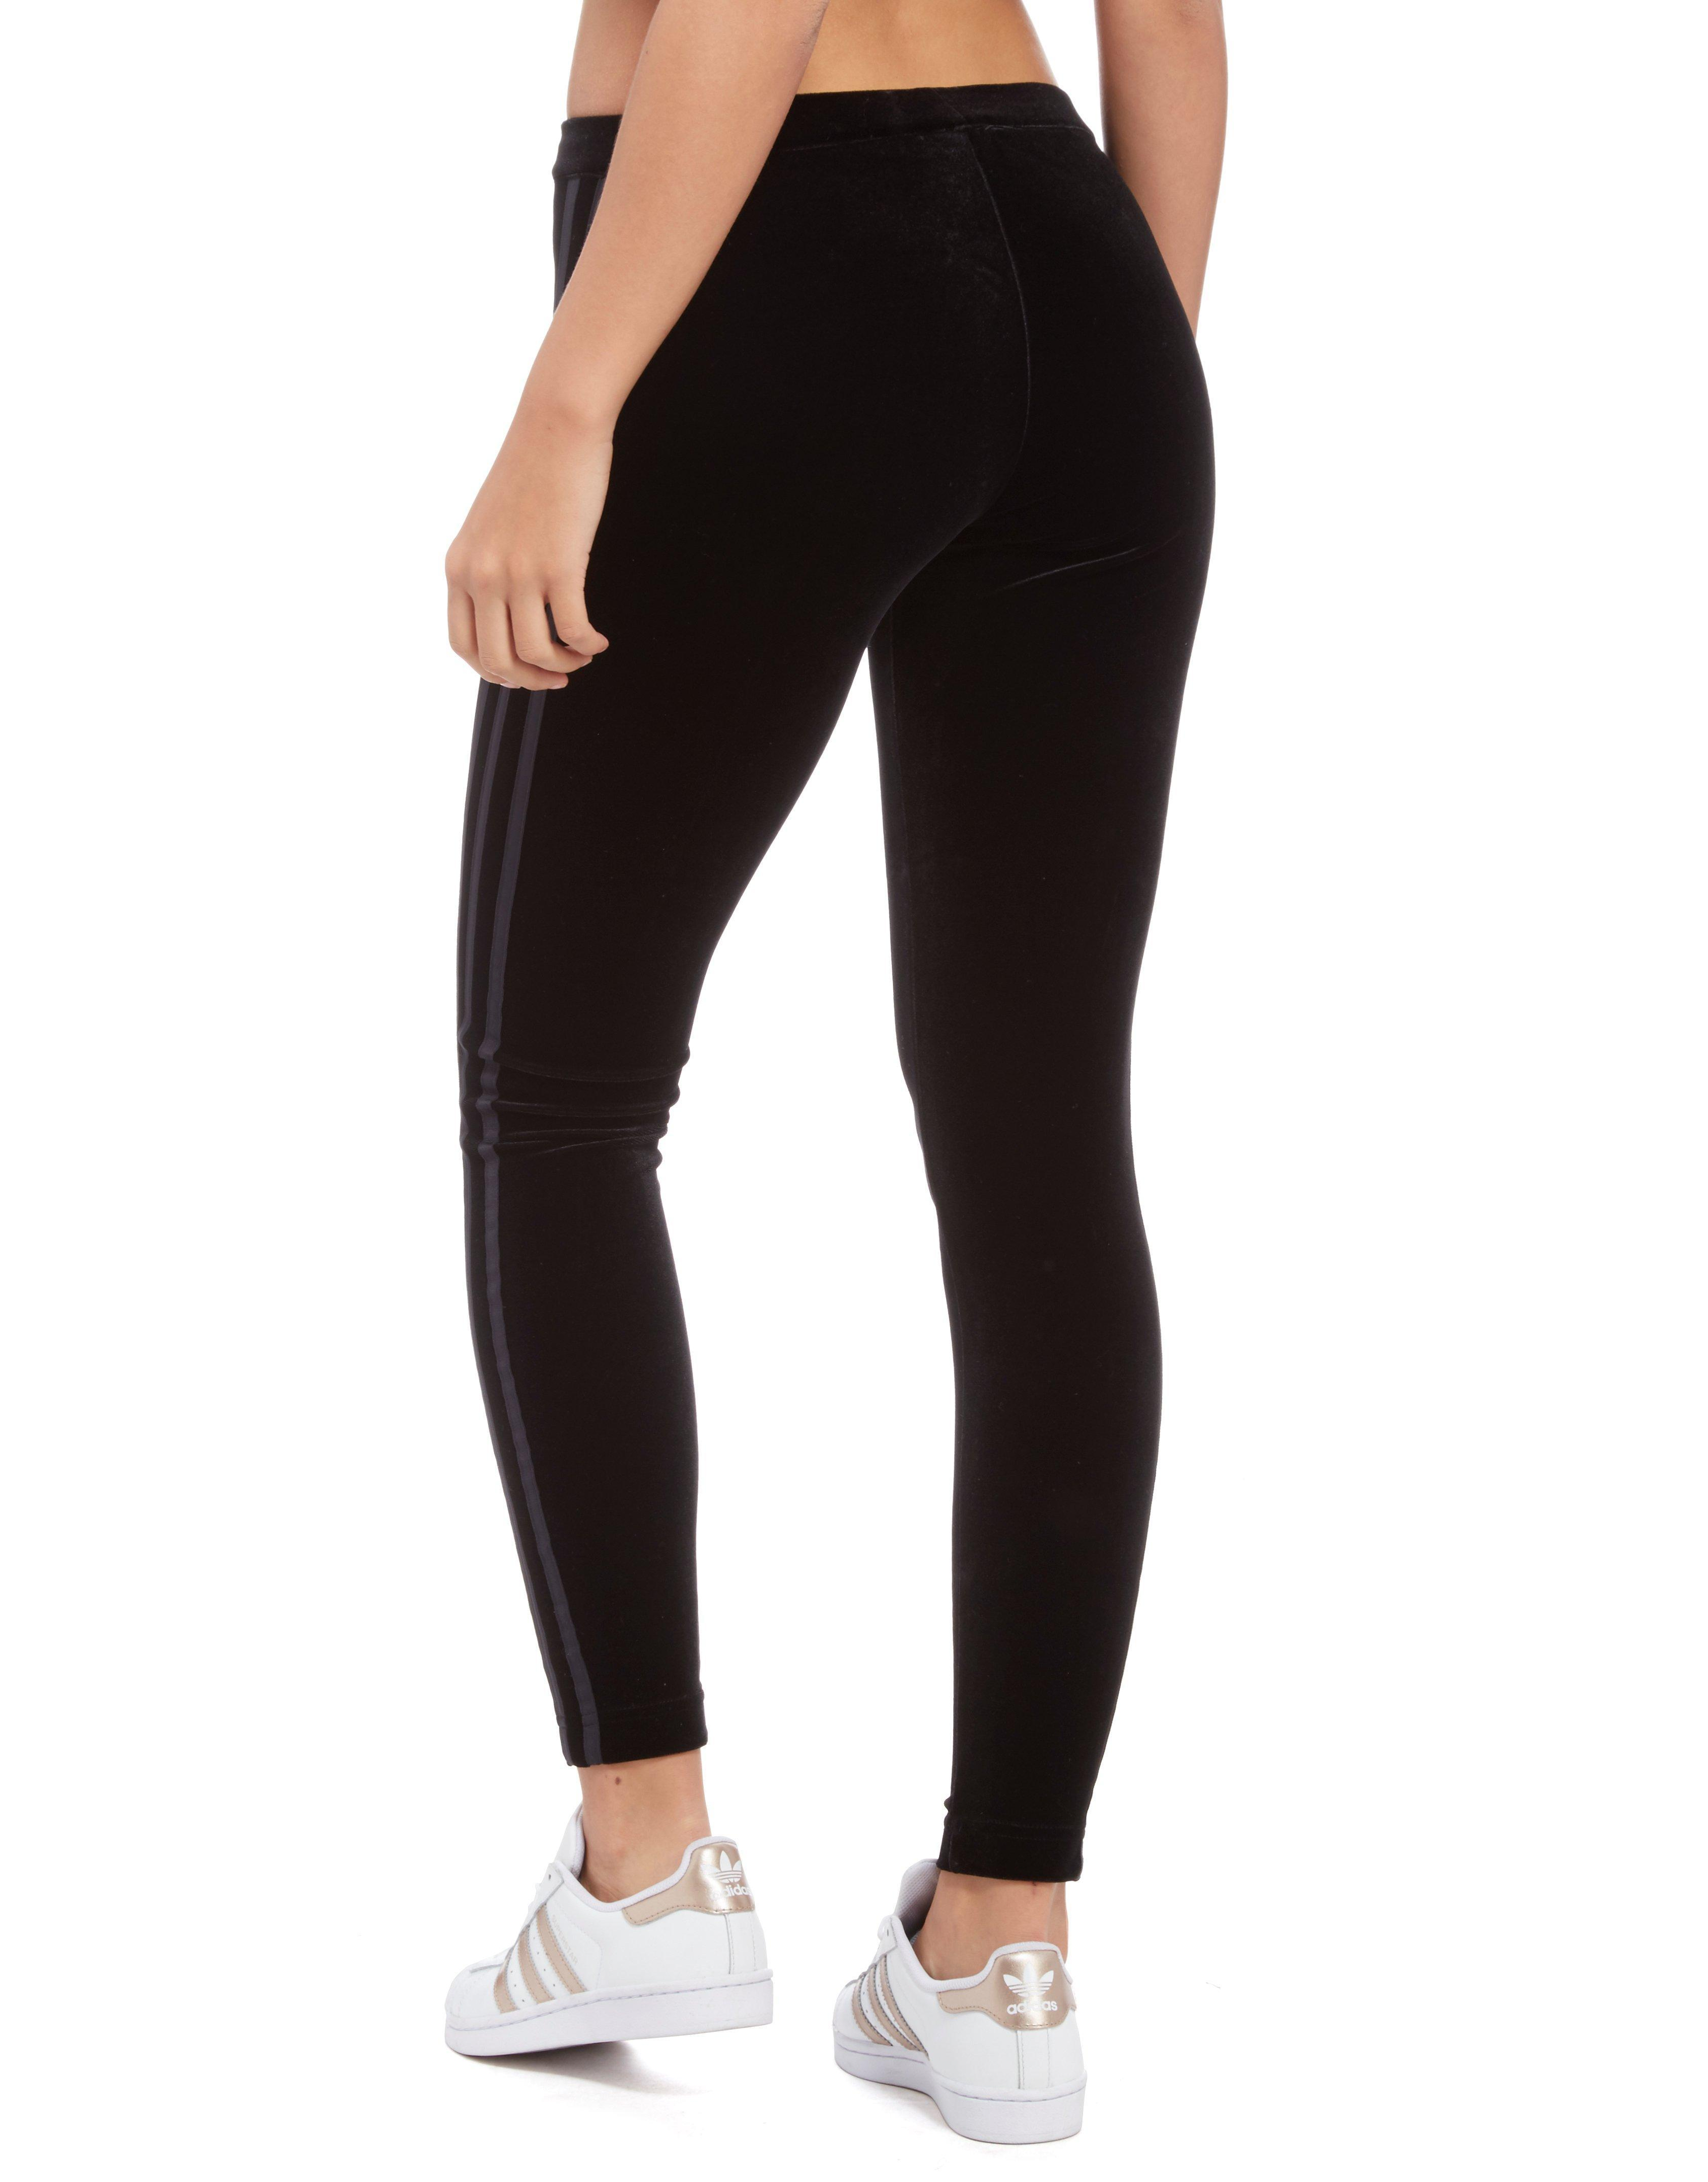 Get the comfort of leggings + a going-out look! Shop our Velvet Leggings for a figure-flattering look this season. Free shipping on all orders!